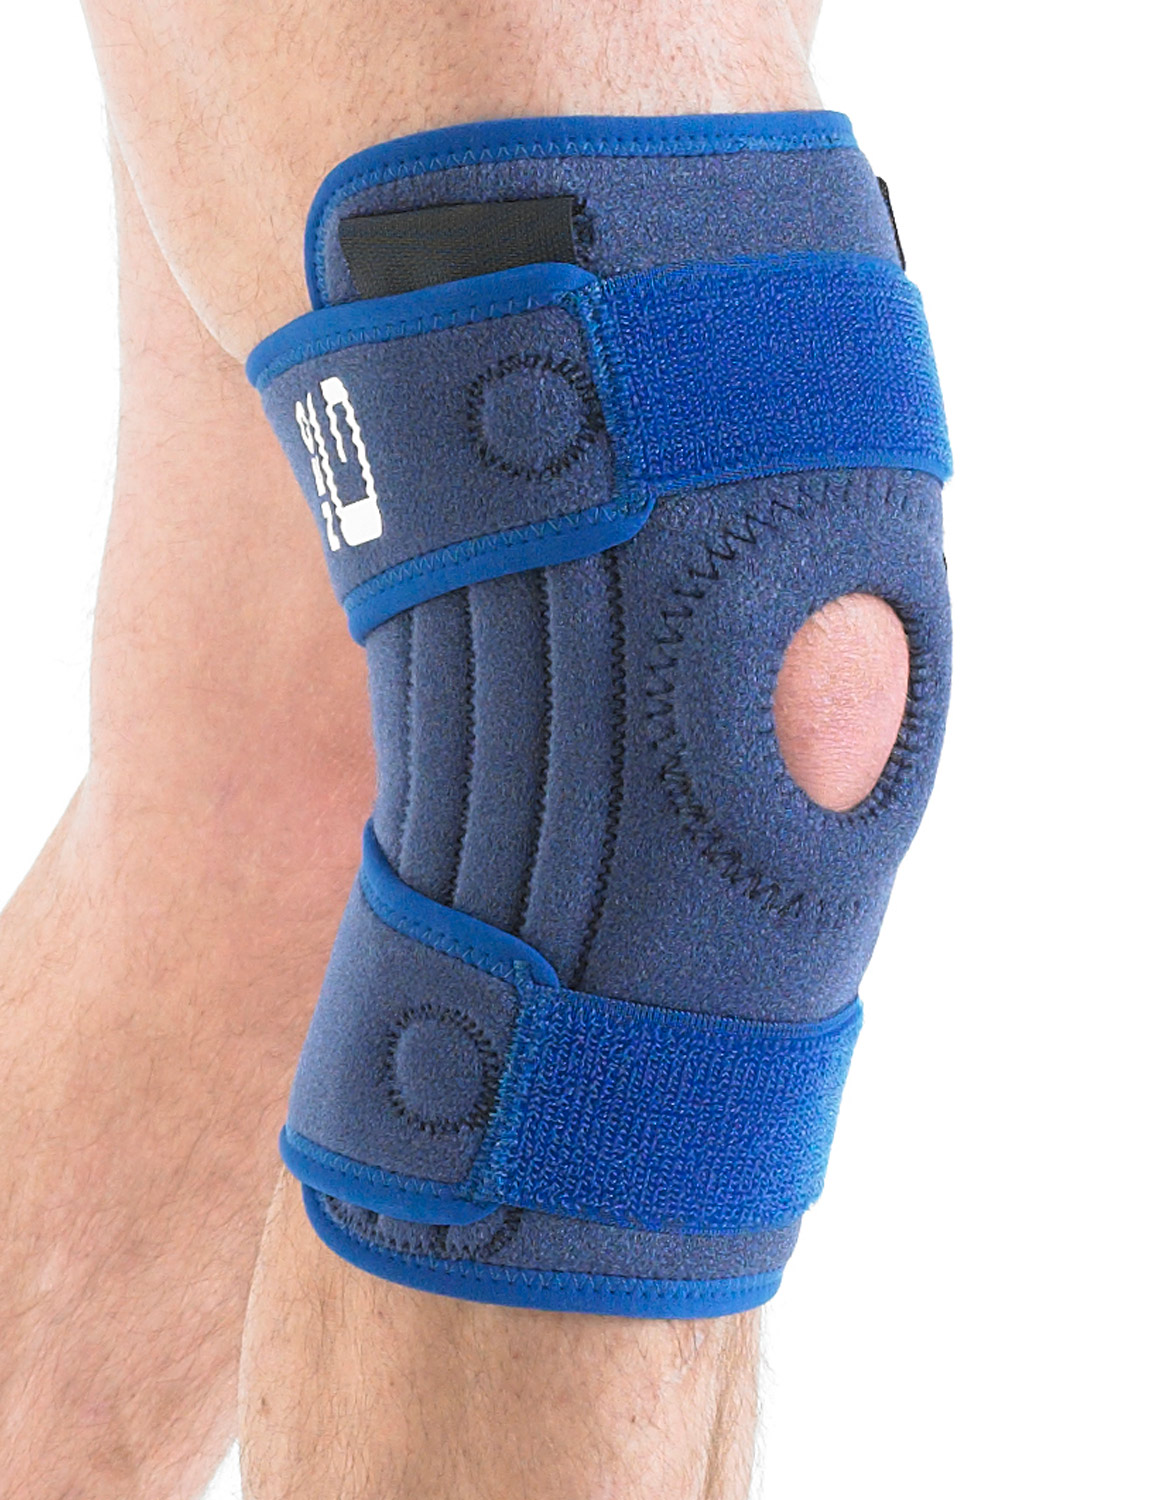 893 - STABILIZED OPEN KNEE SUPPORT  The open patella design with stitched buttress helps with patellar tracking whilst providing added support and helping with overall stability by eliminating glide and twisting at the knee.